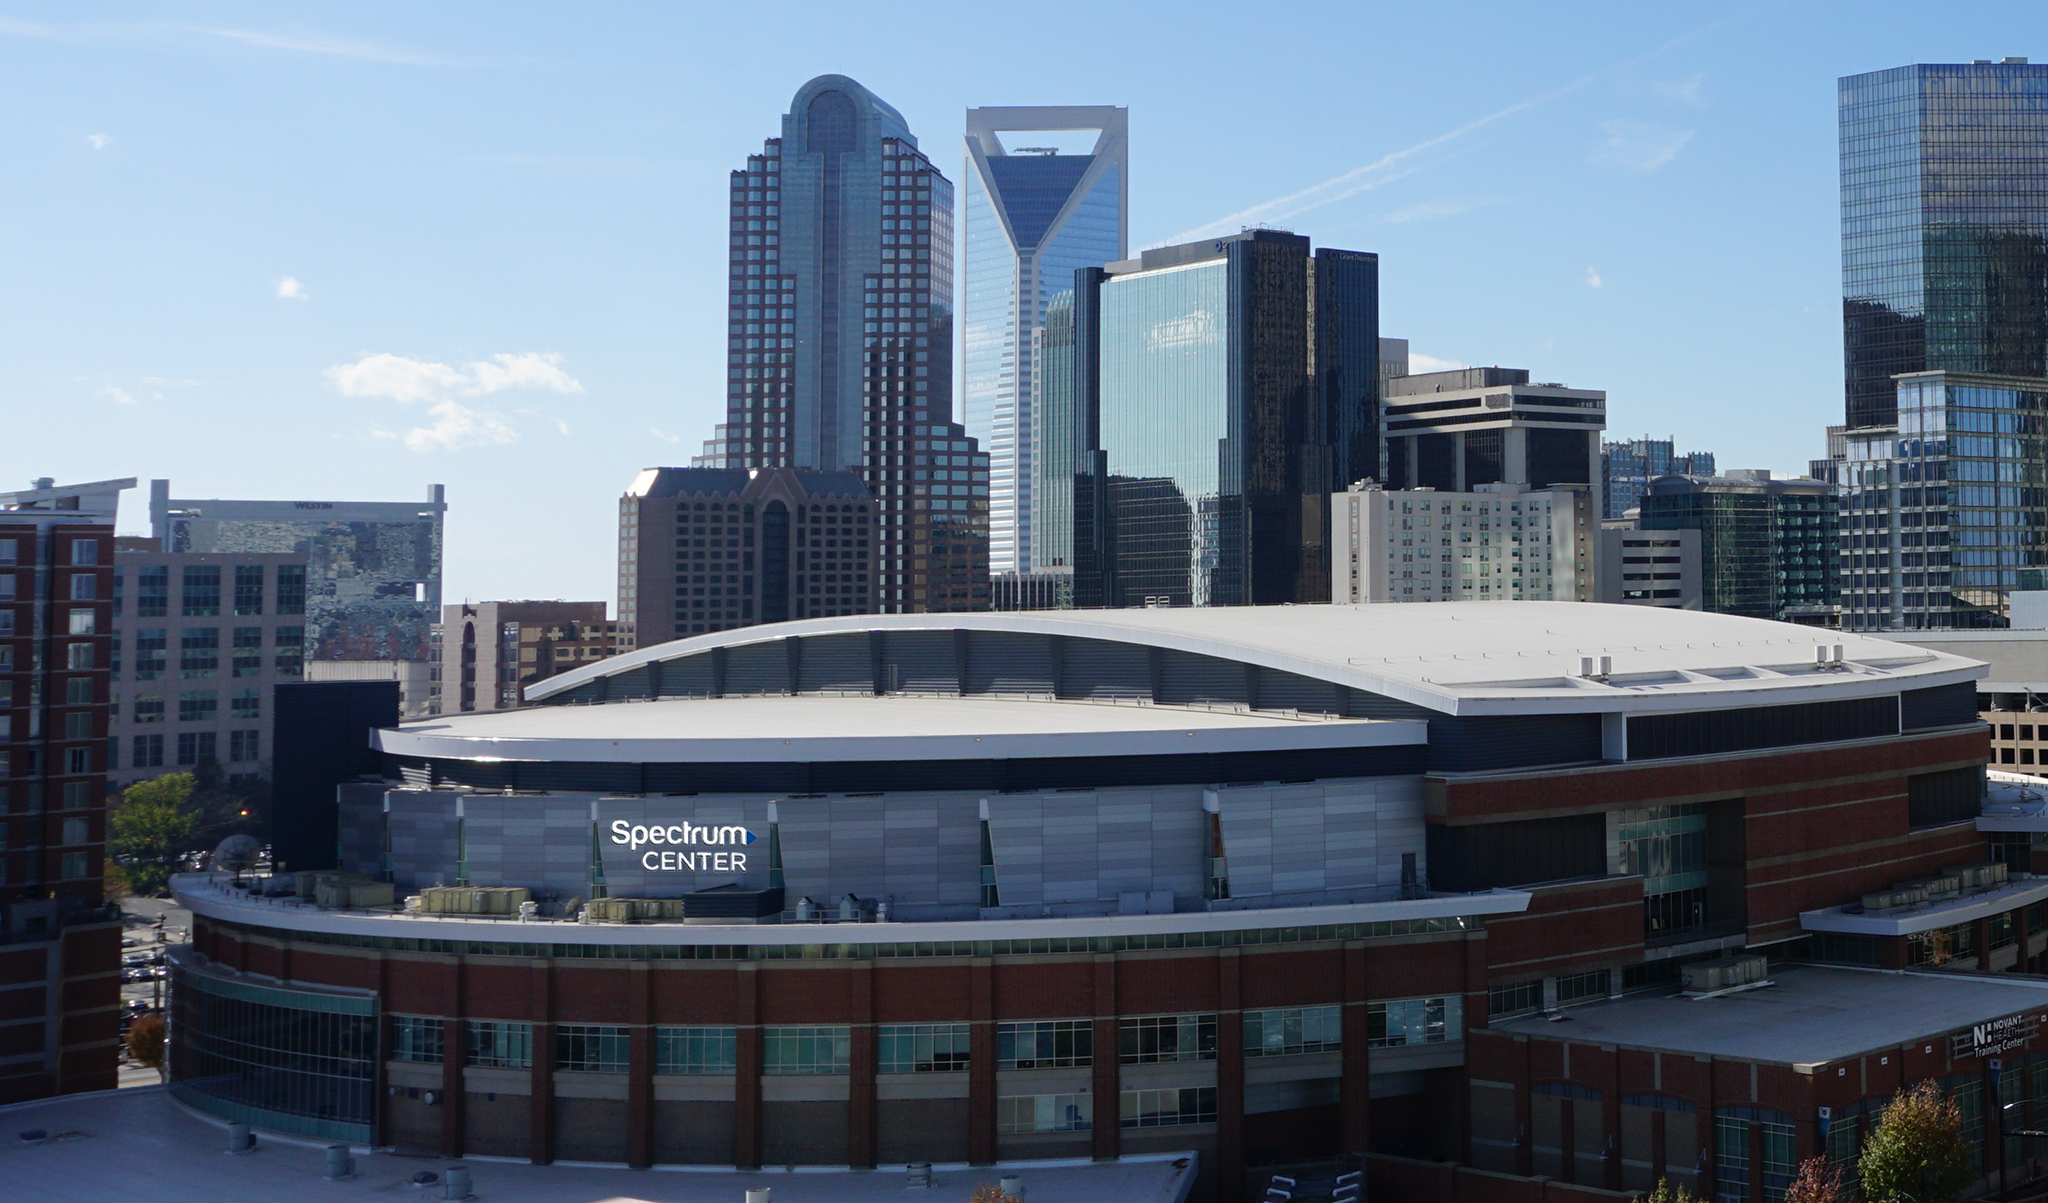 The Time Warner Cable Arena Is Officially Changing Its